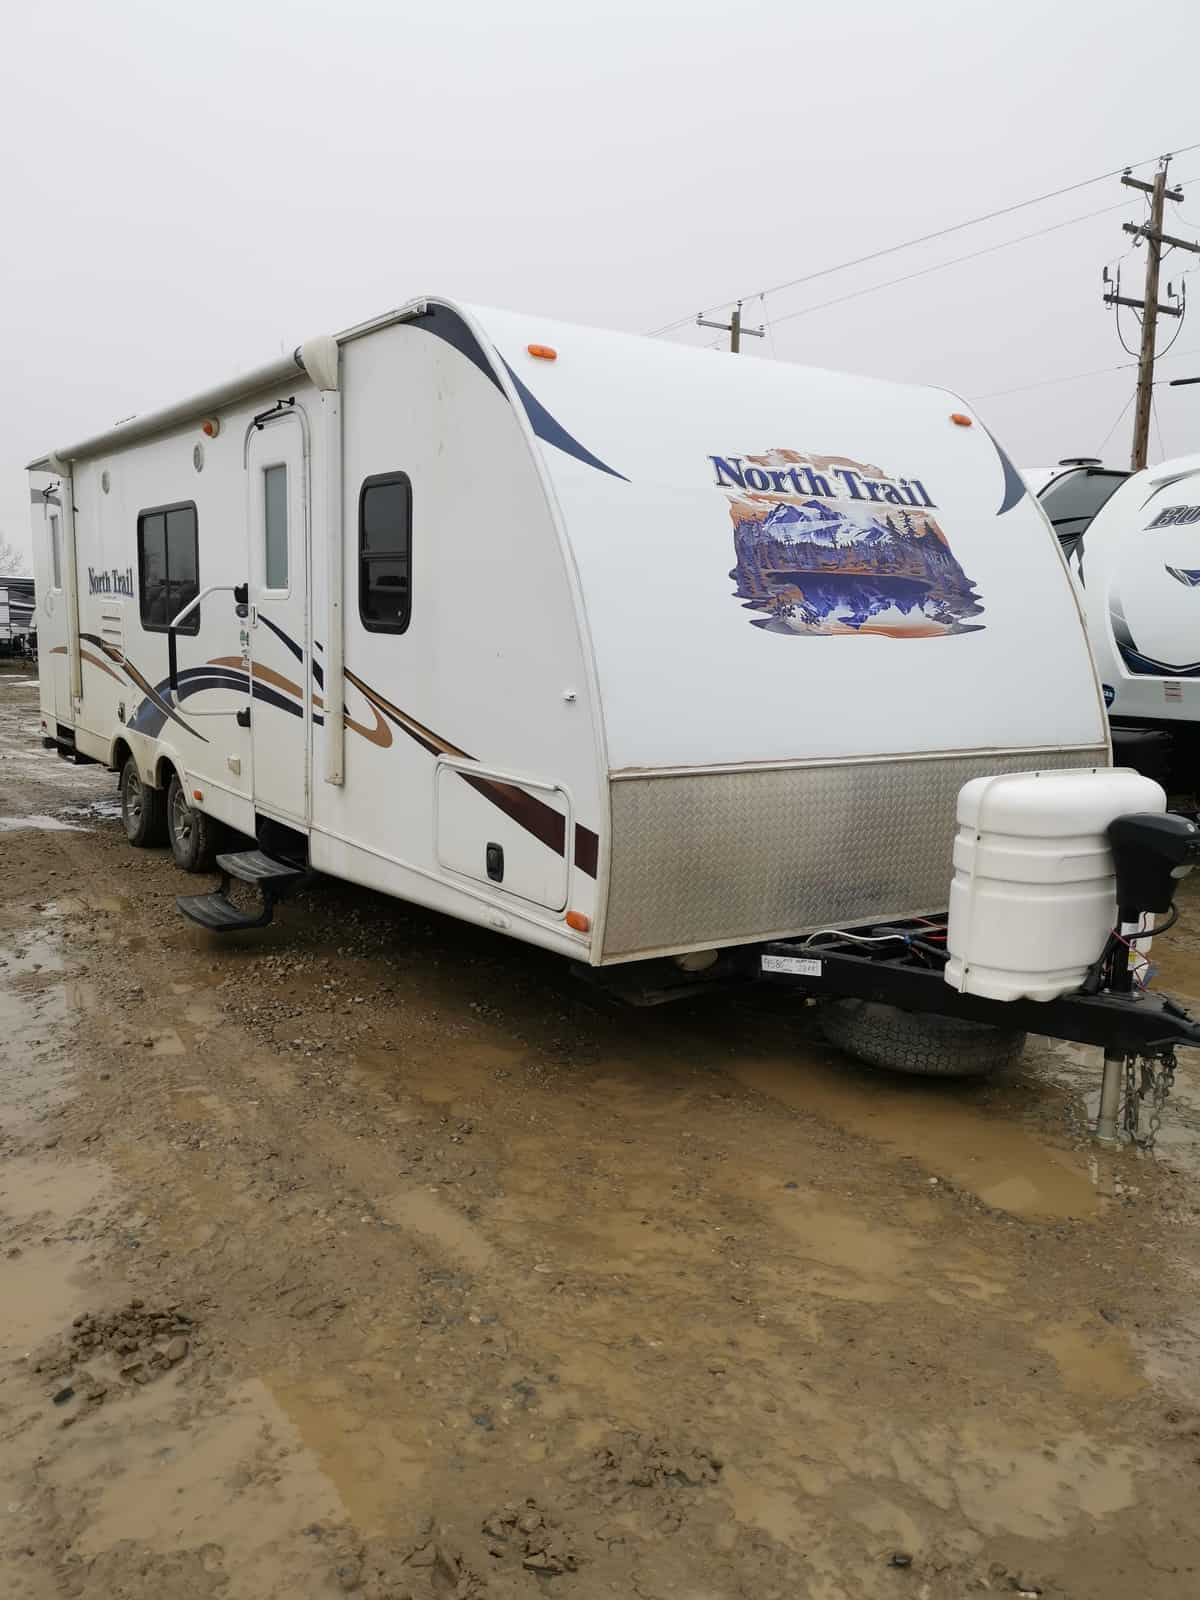 USED 2012 Heartland NORTHTRAIL 28RBS